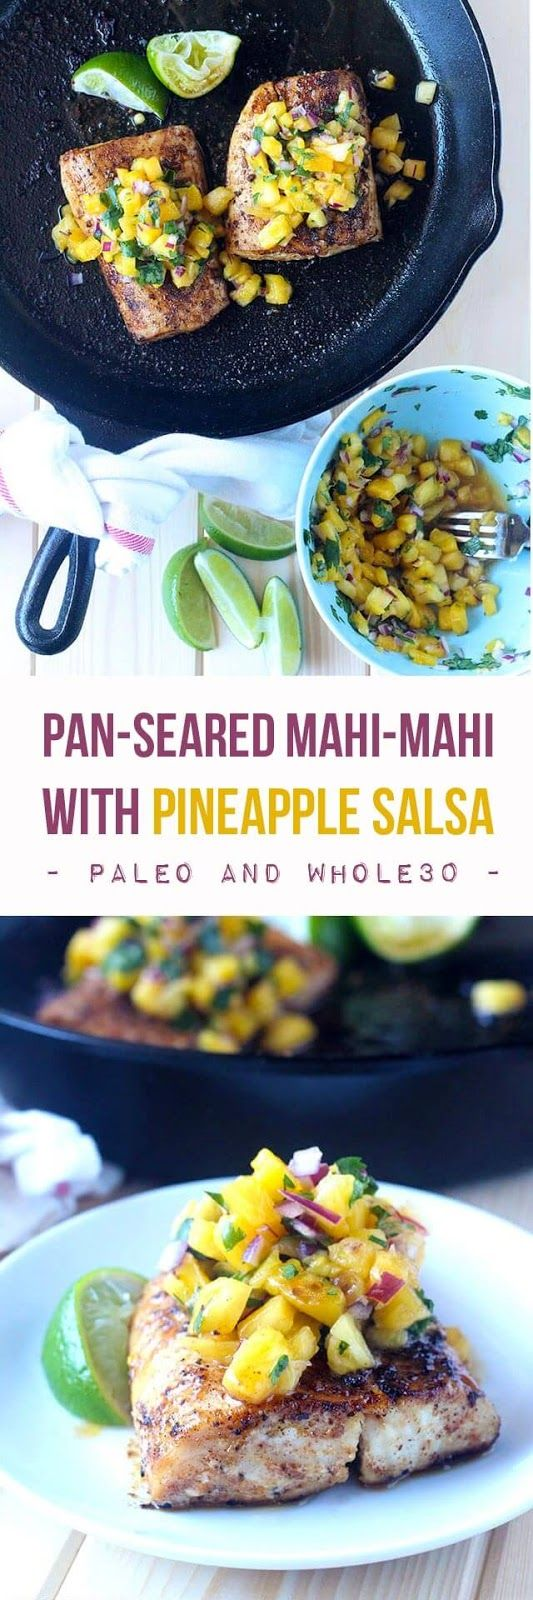 Healthy Fish Recipe: Pan-Seared Mahi-Mahi with Pineapple Salsa (Quick & Easy)